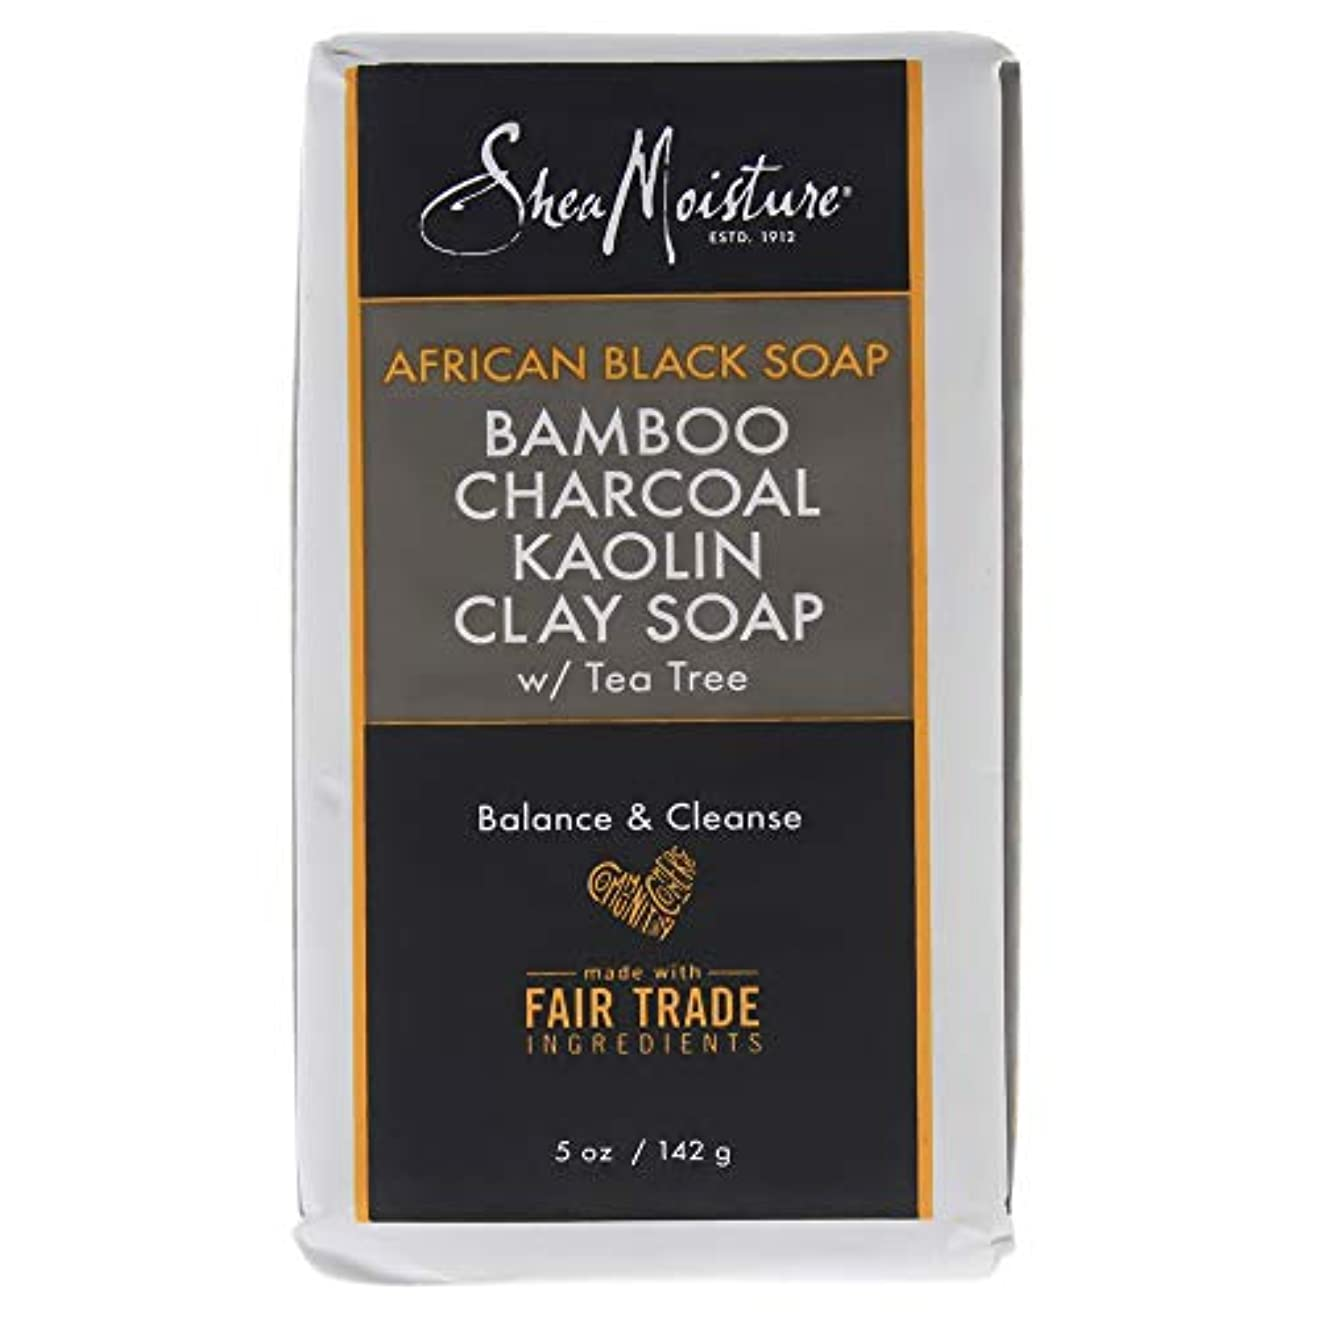 チャネル変動する残高African Black Soap Bamboo Charcoal Kaolin Clay Soap